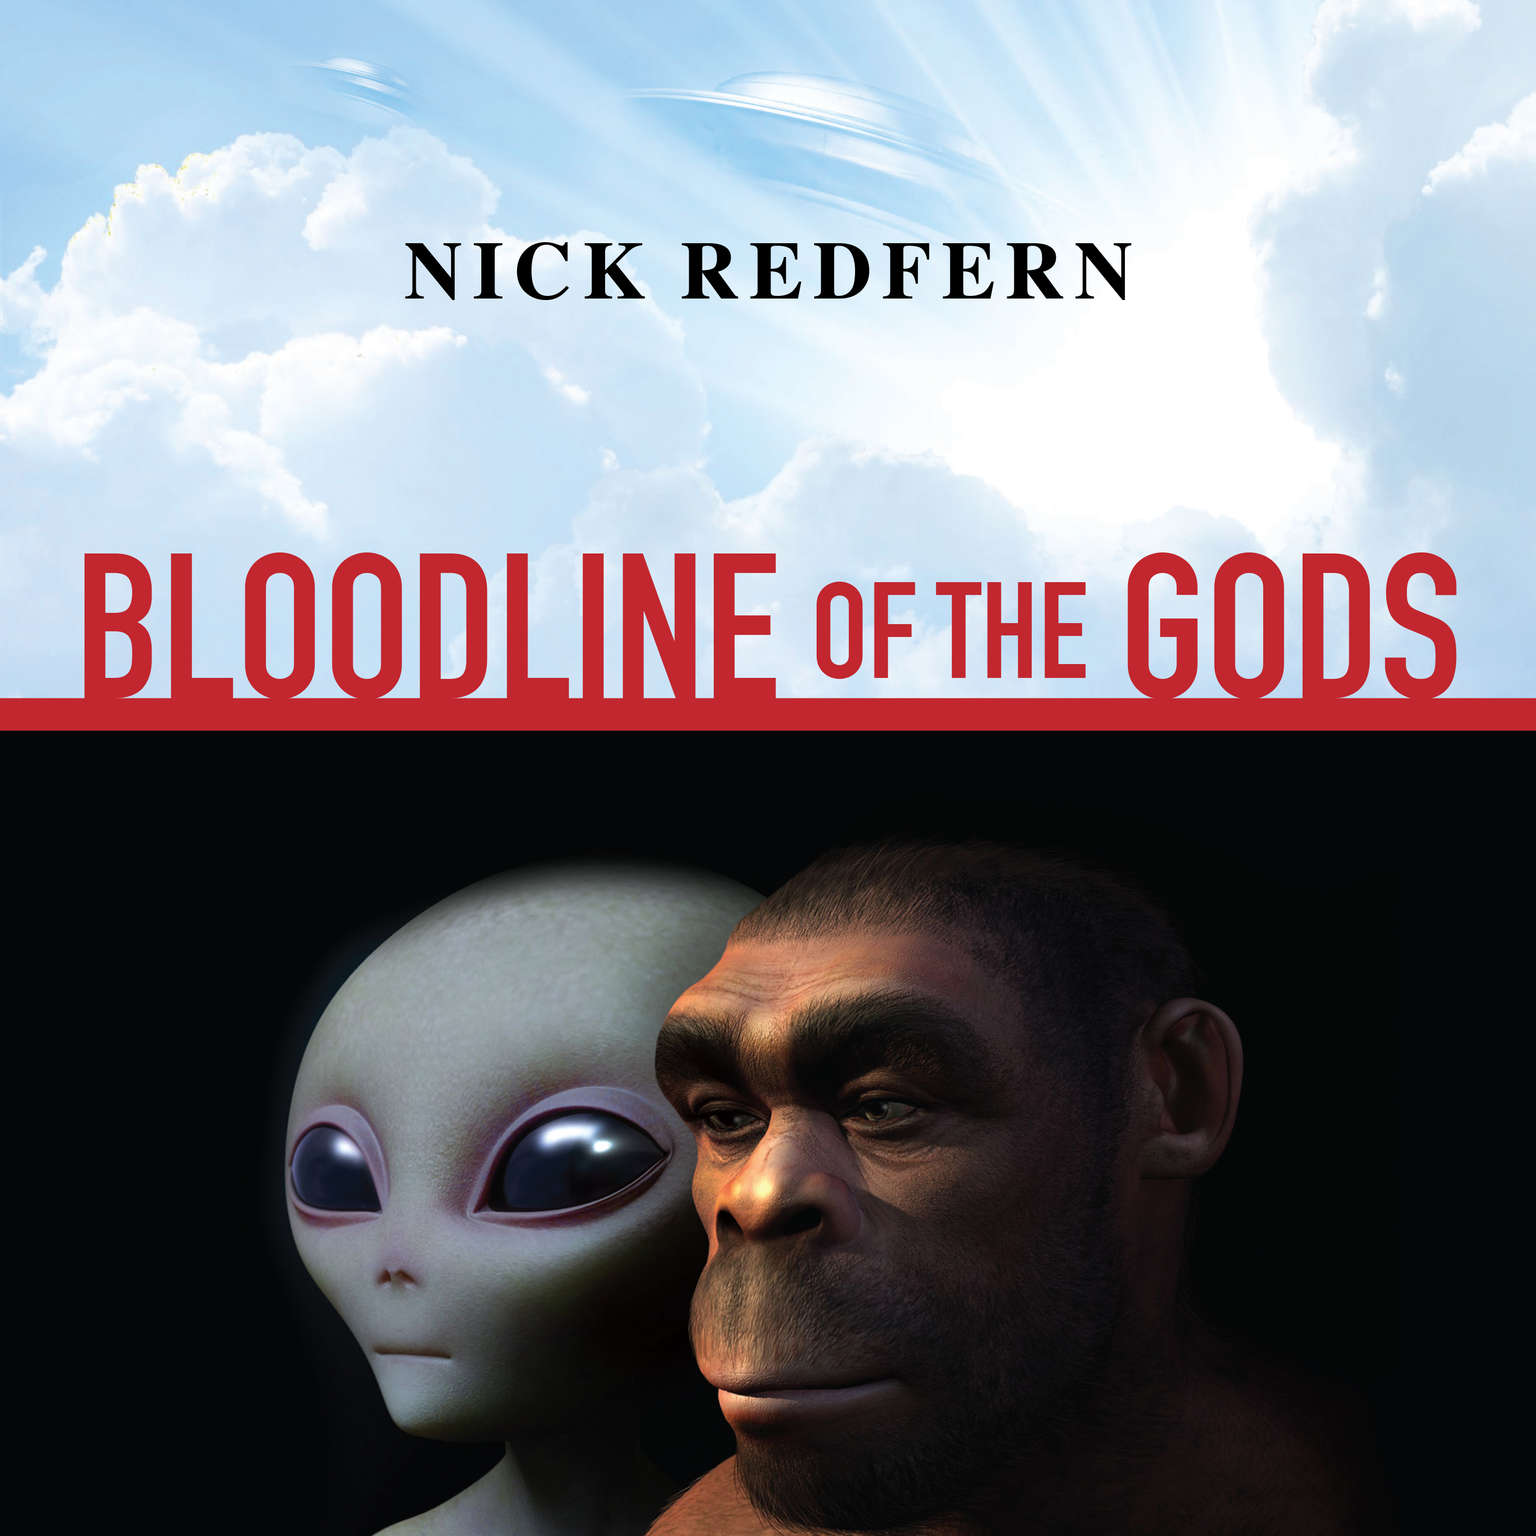 Bloodline of the Gods: Unravel the Mystery in the Human Blood Type to Reveal the Aliens Among Us Audiobook, by Nick Redfern